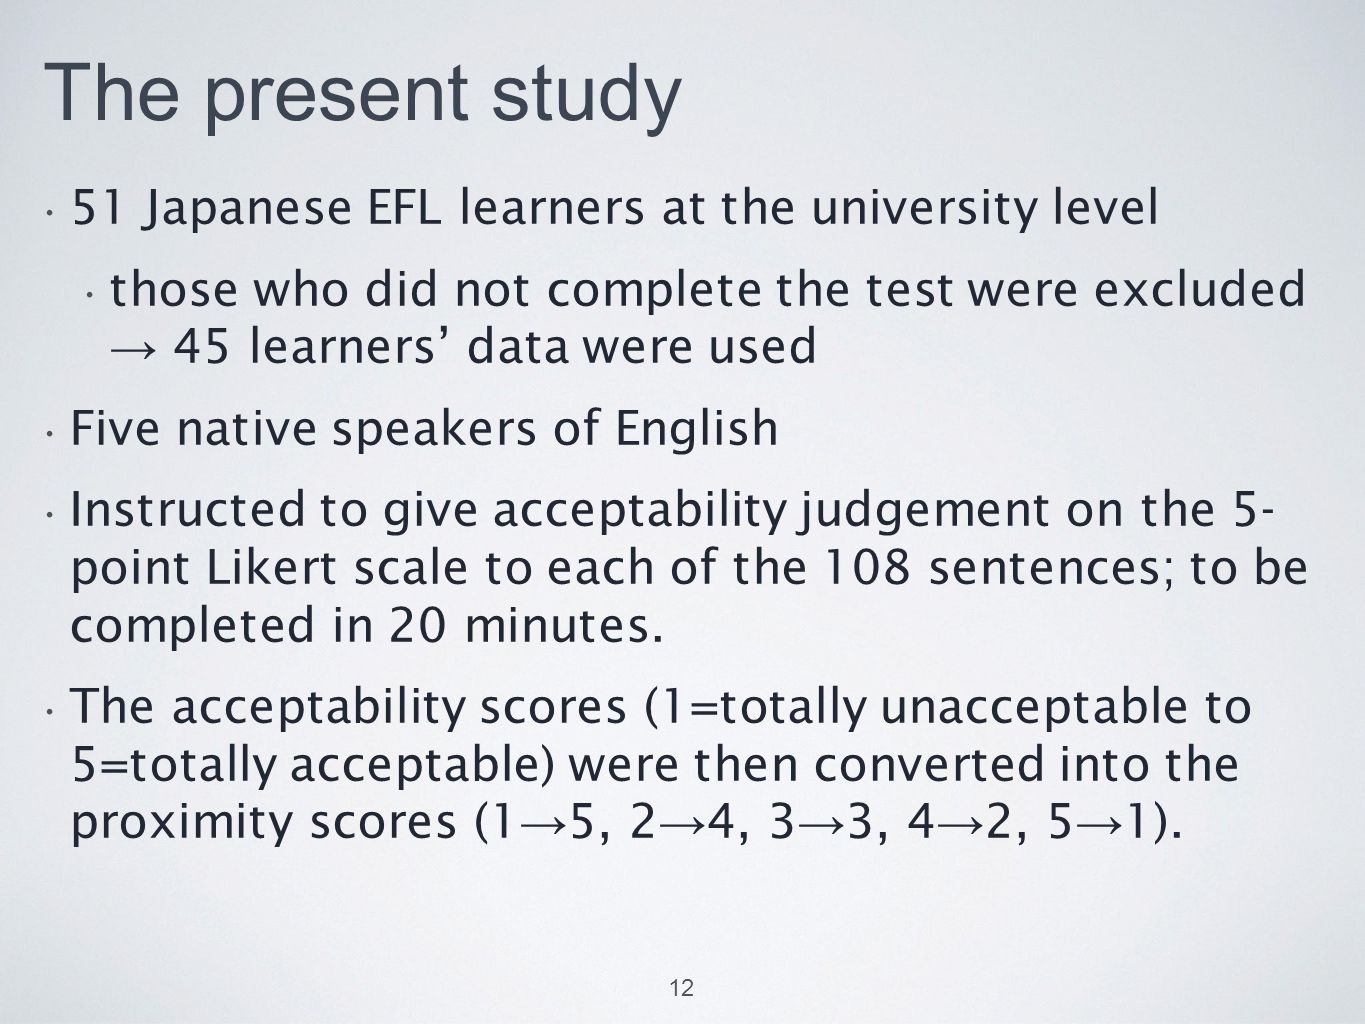 The present study 51 Japanese EFL learners at the university level those who did not complete the test were excluded → 45 learners' data were used Five native speakers of English Instructed to give acceptability judgement on the 5- point Likert scale to each of the 108 sentences; to be completed in 20 minutes.